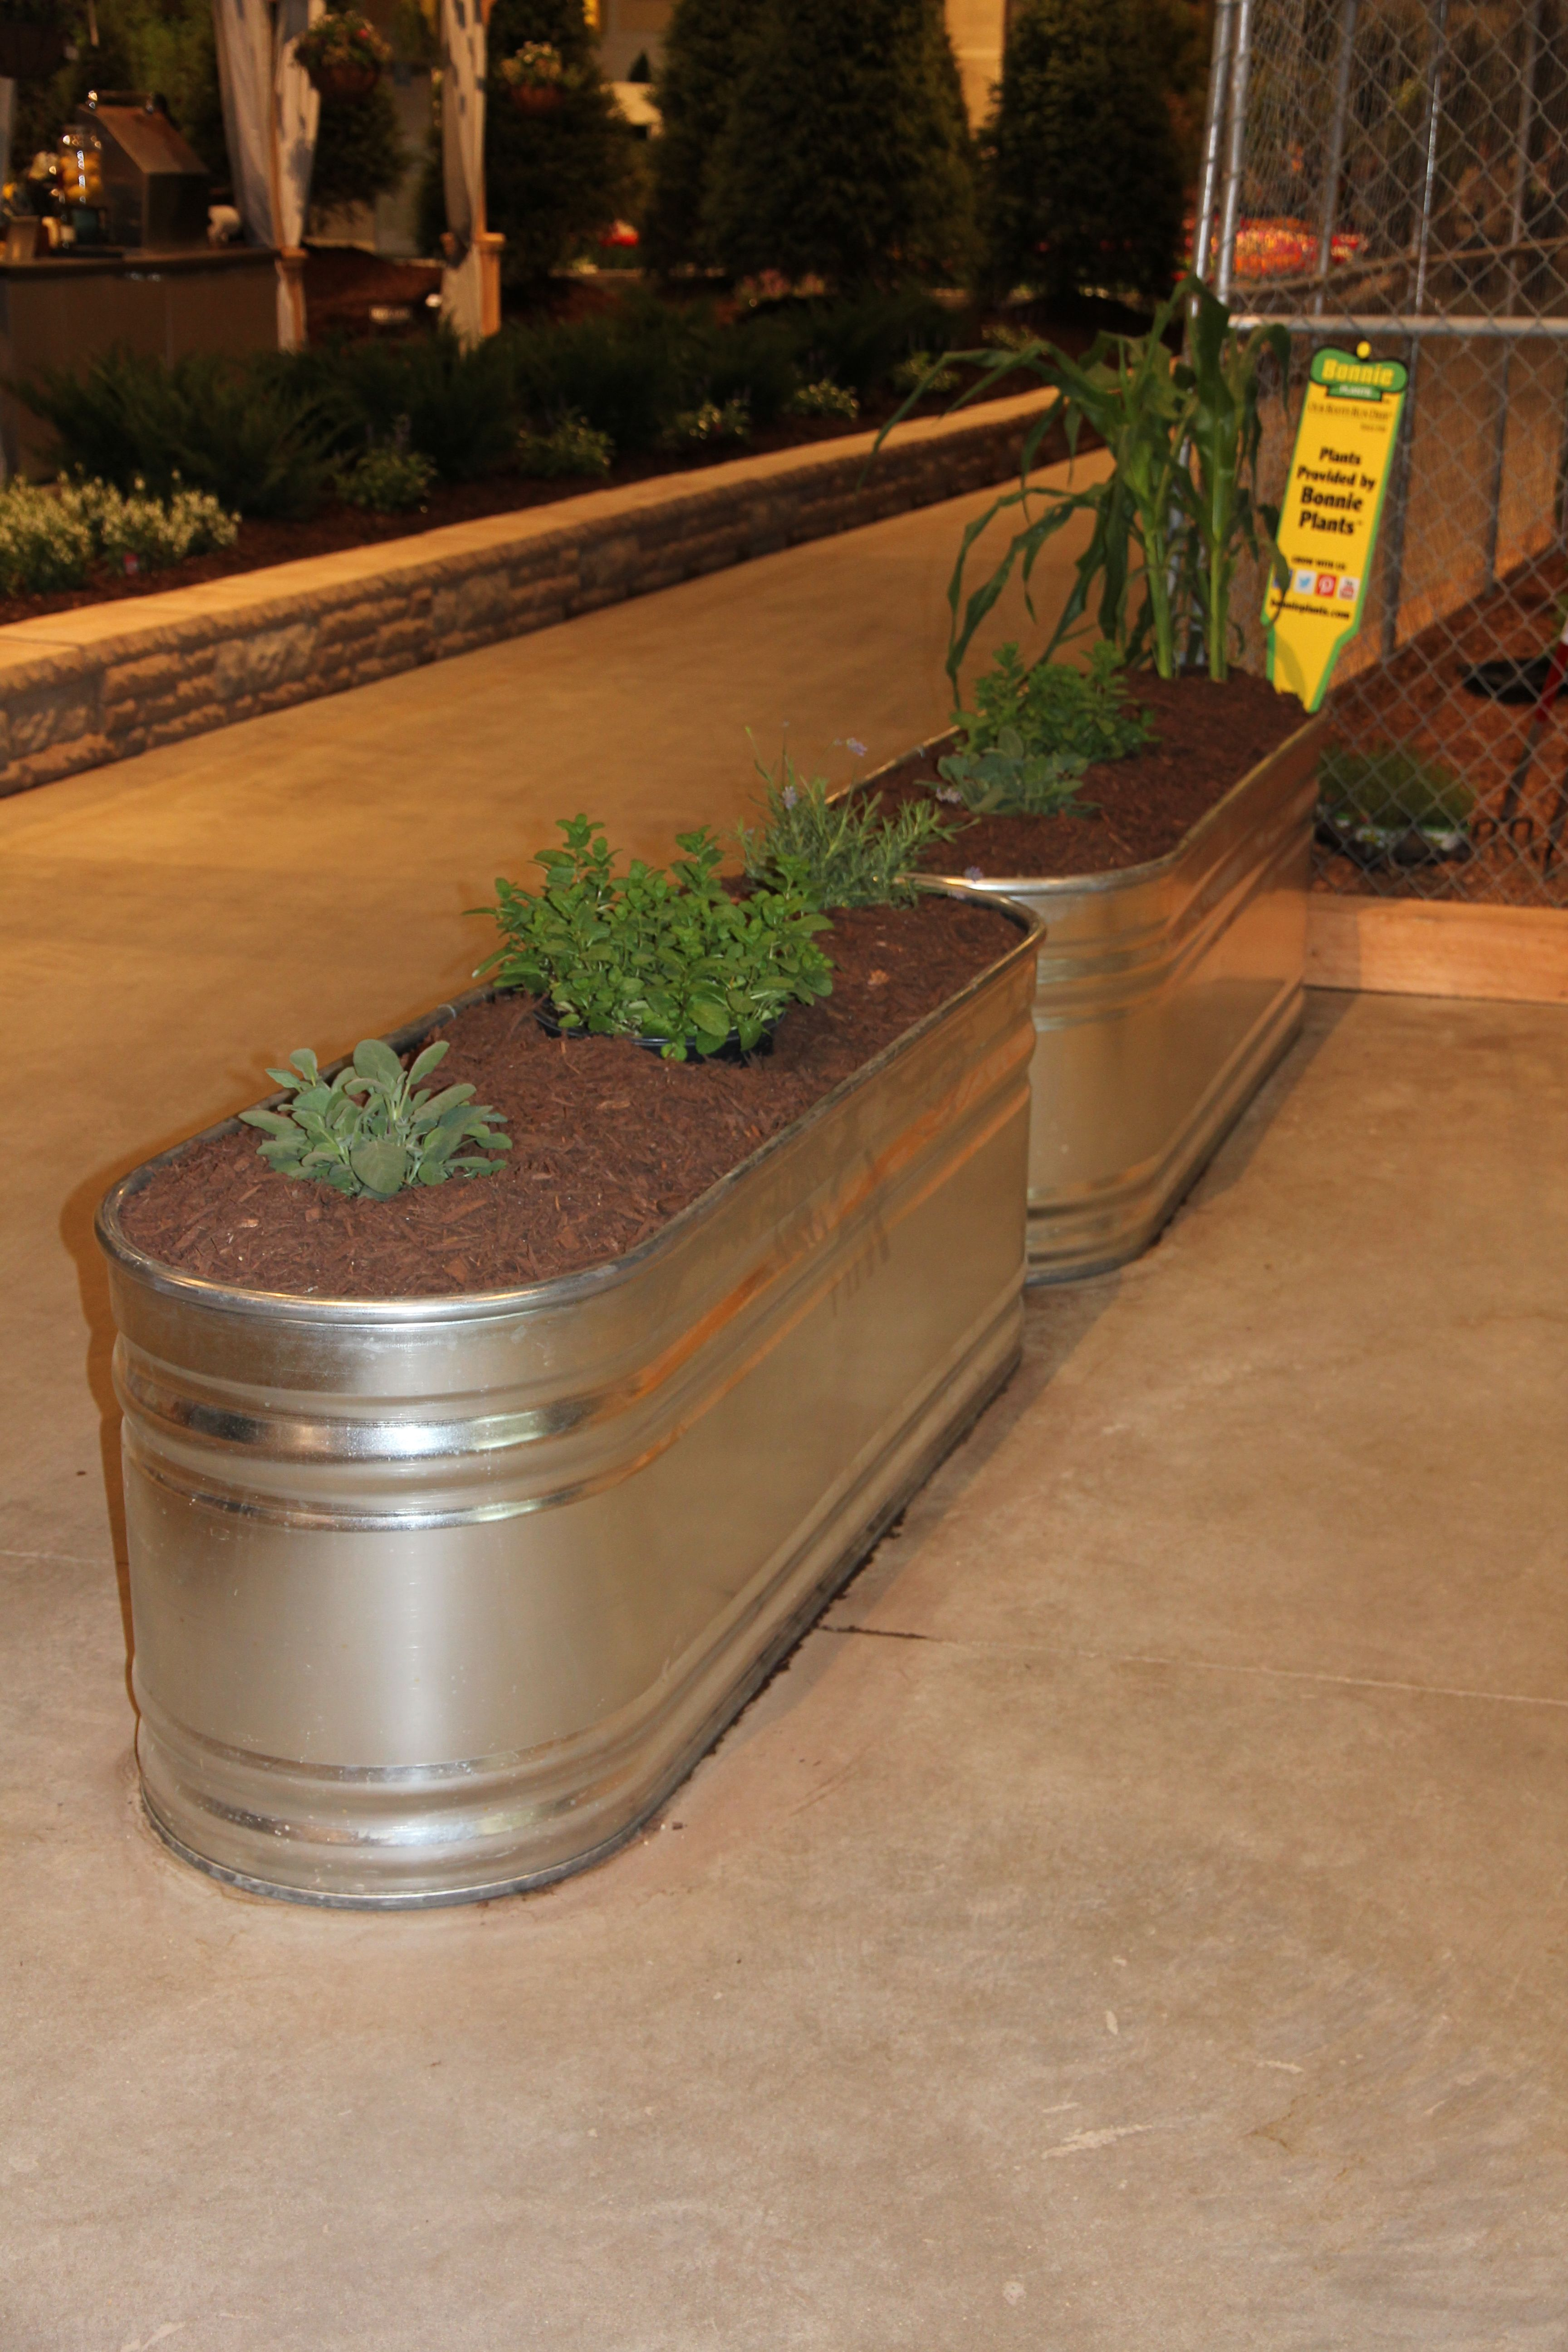 Another example of a water trough planter. Would be a good